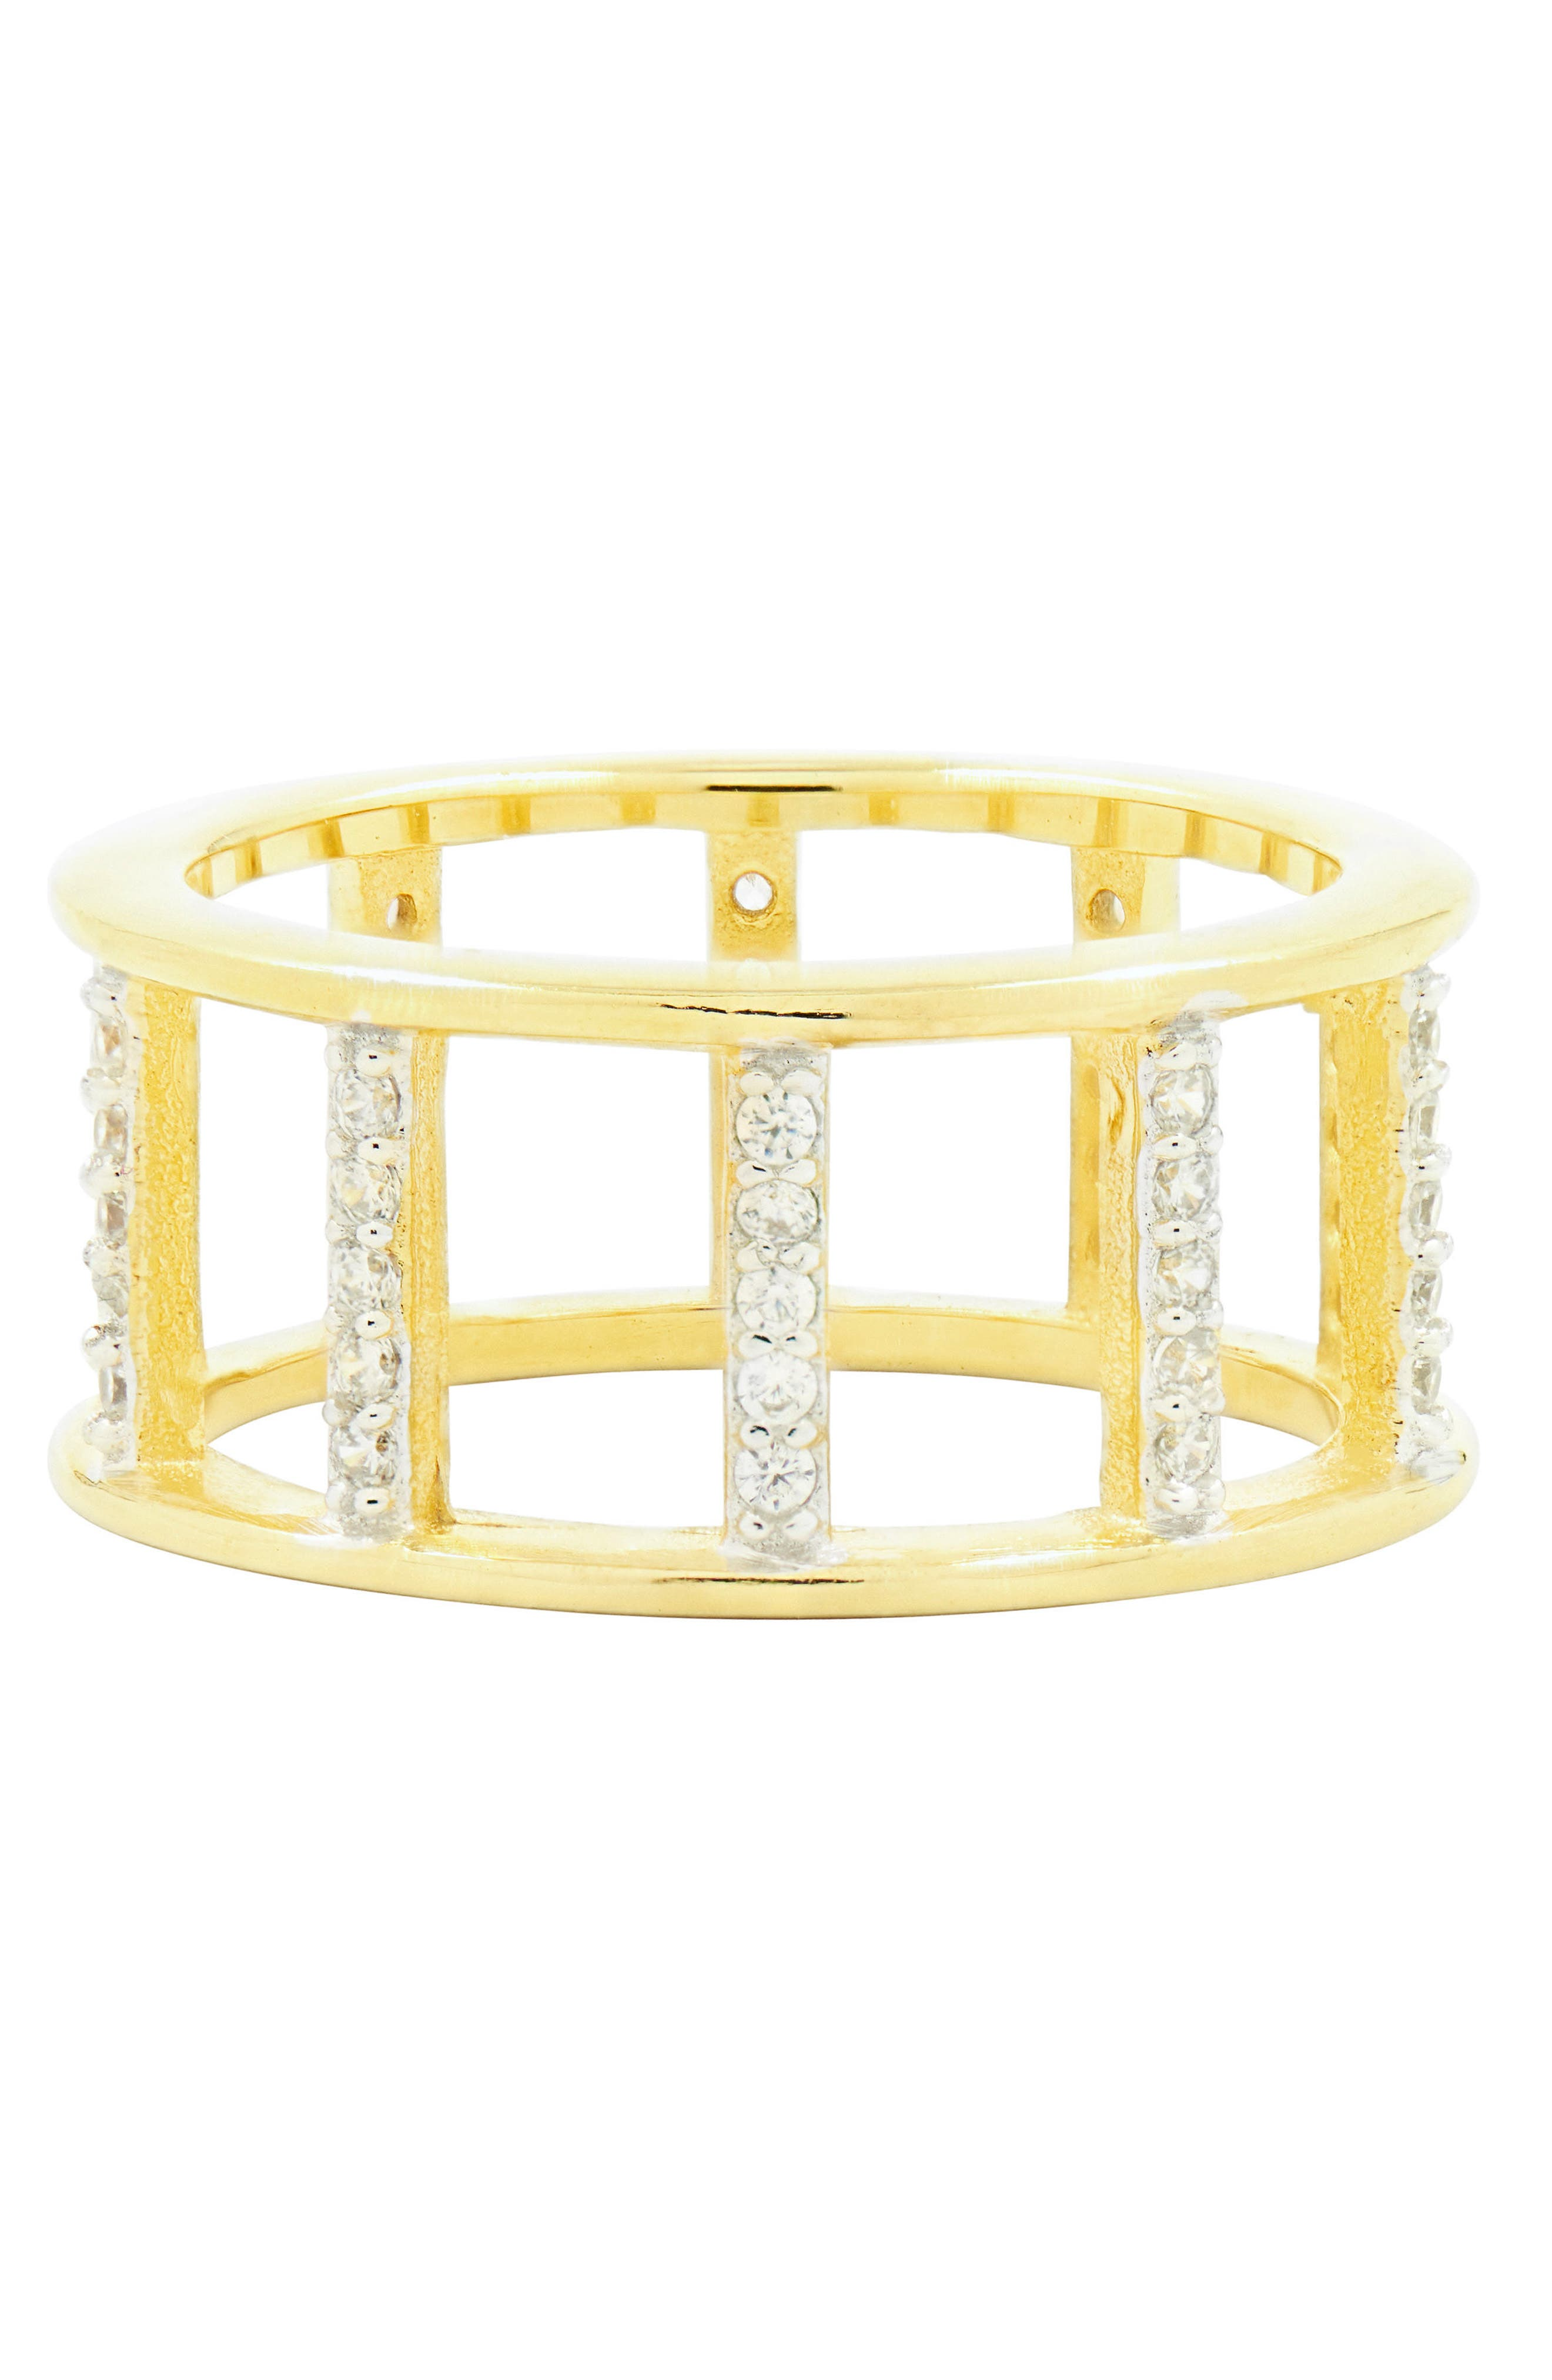 Radiance Openwork Ring,                         Main,                         color, Silver/ Gold